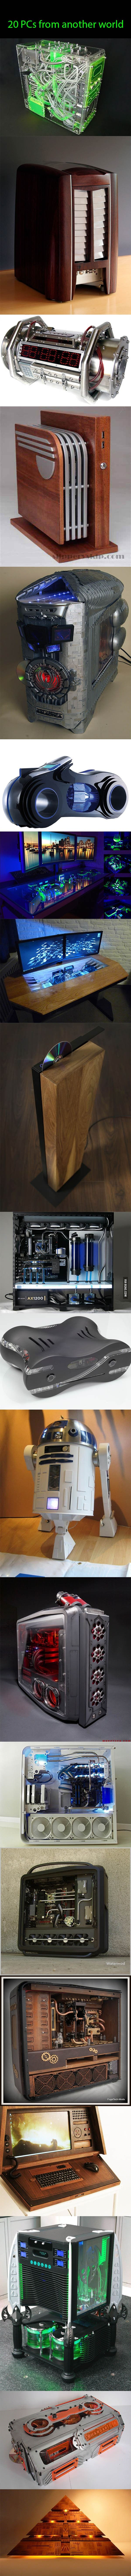 20 Cool Pimped PCs